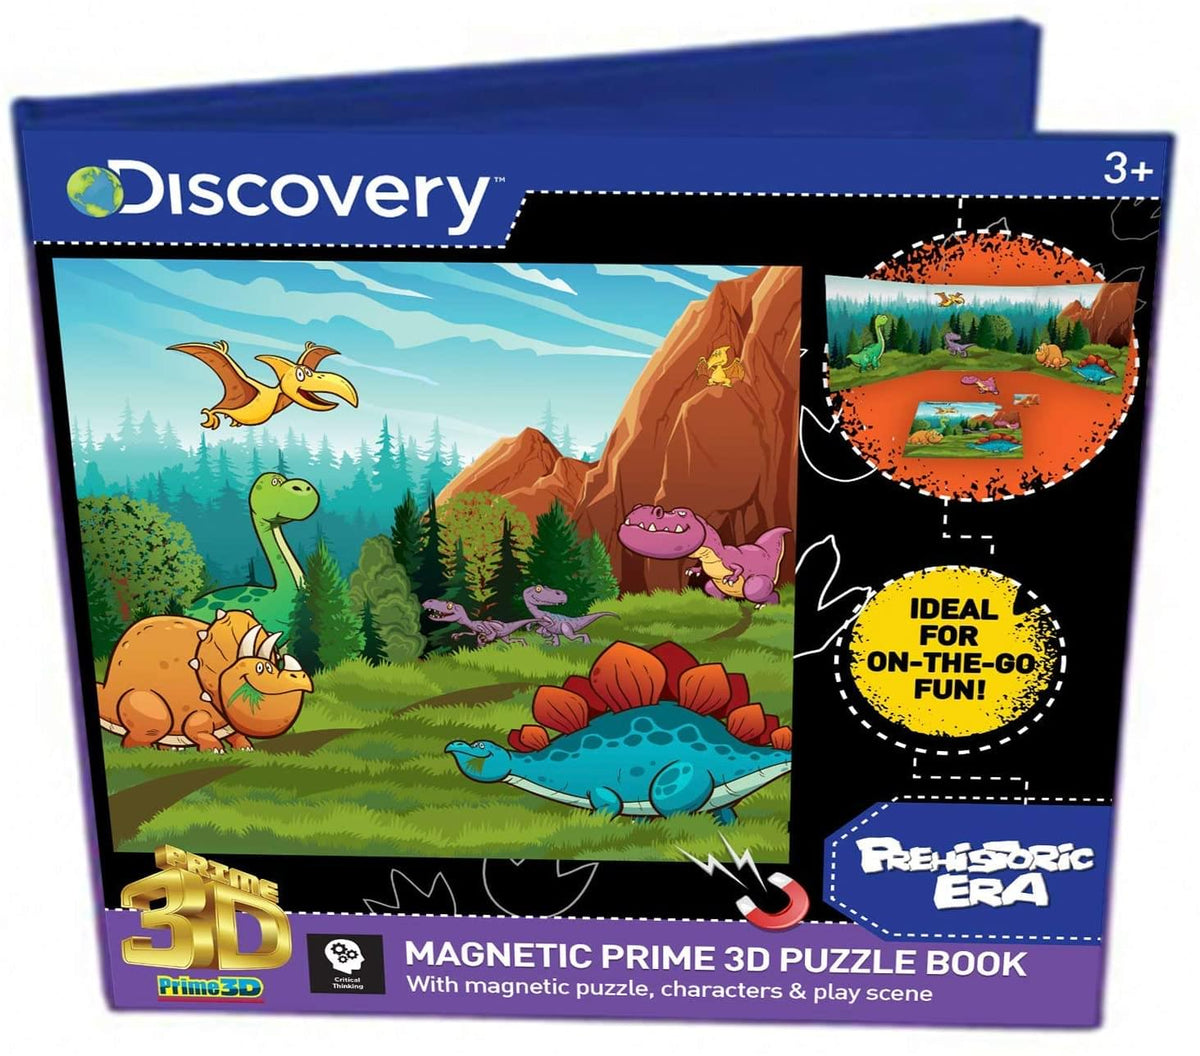 Discovery Dinosaurs Magnetic Super 3D Puzzle Book